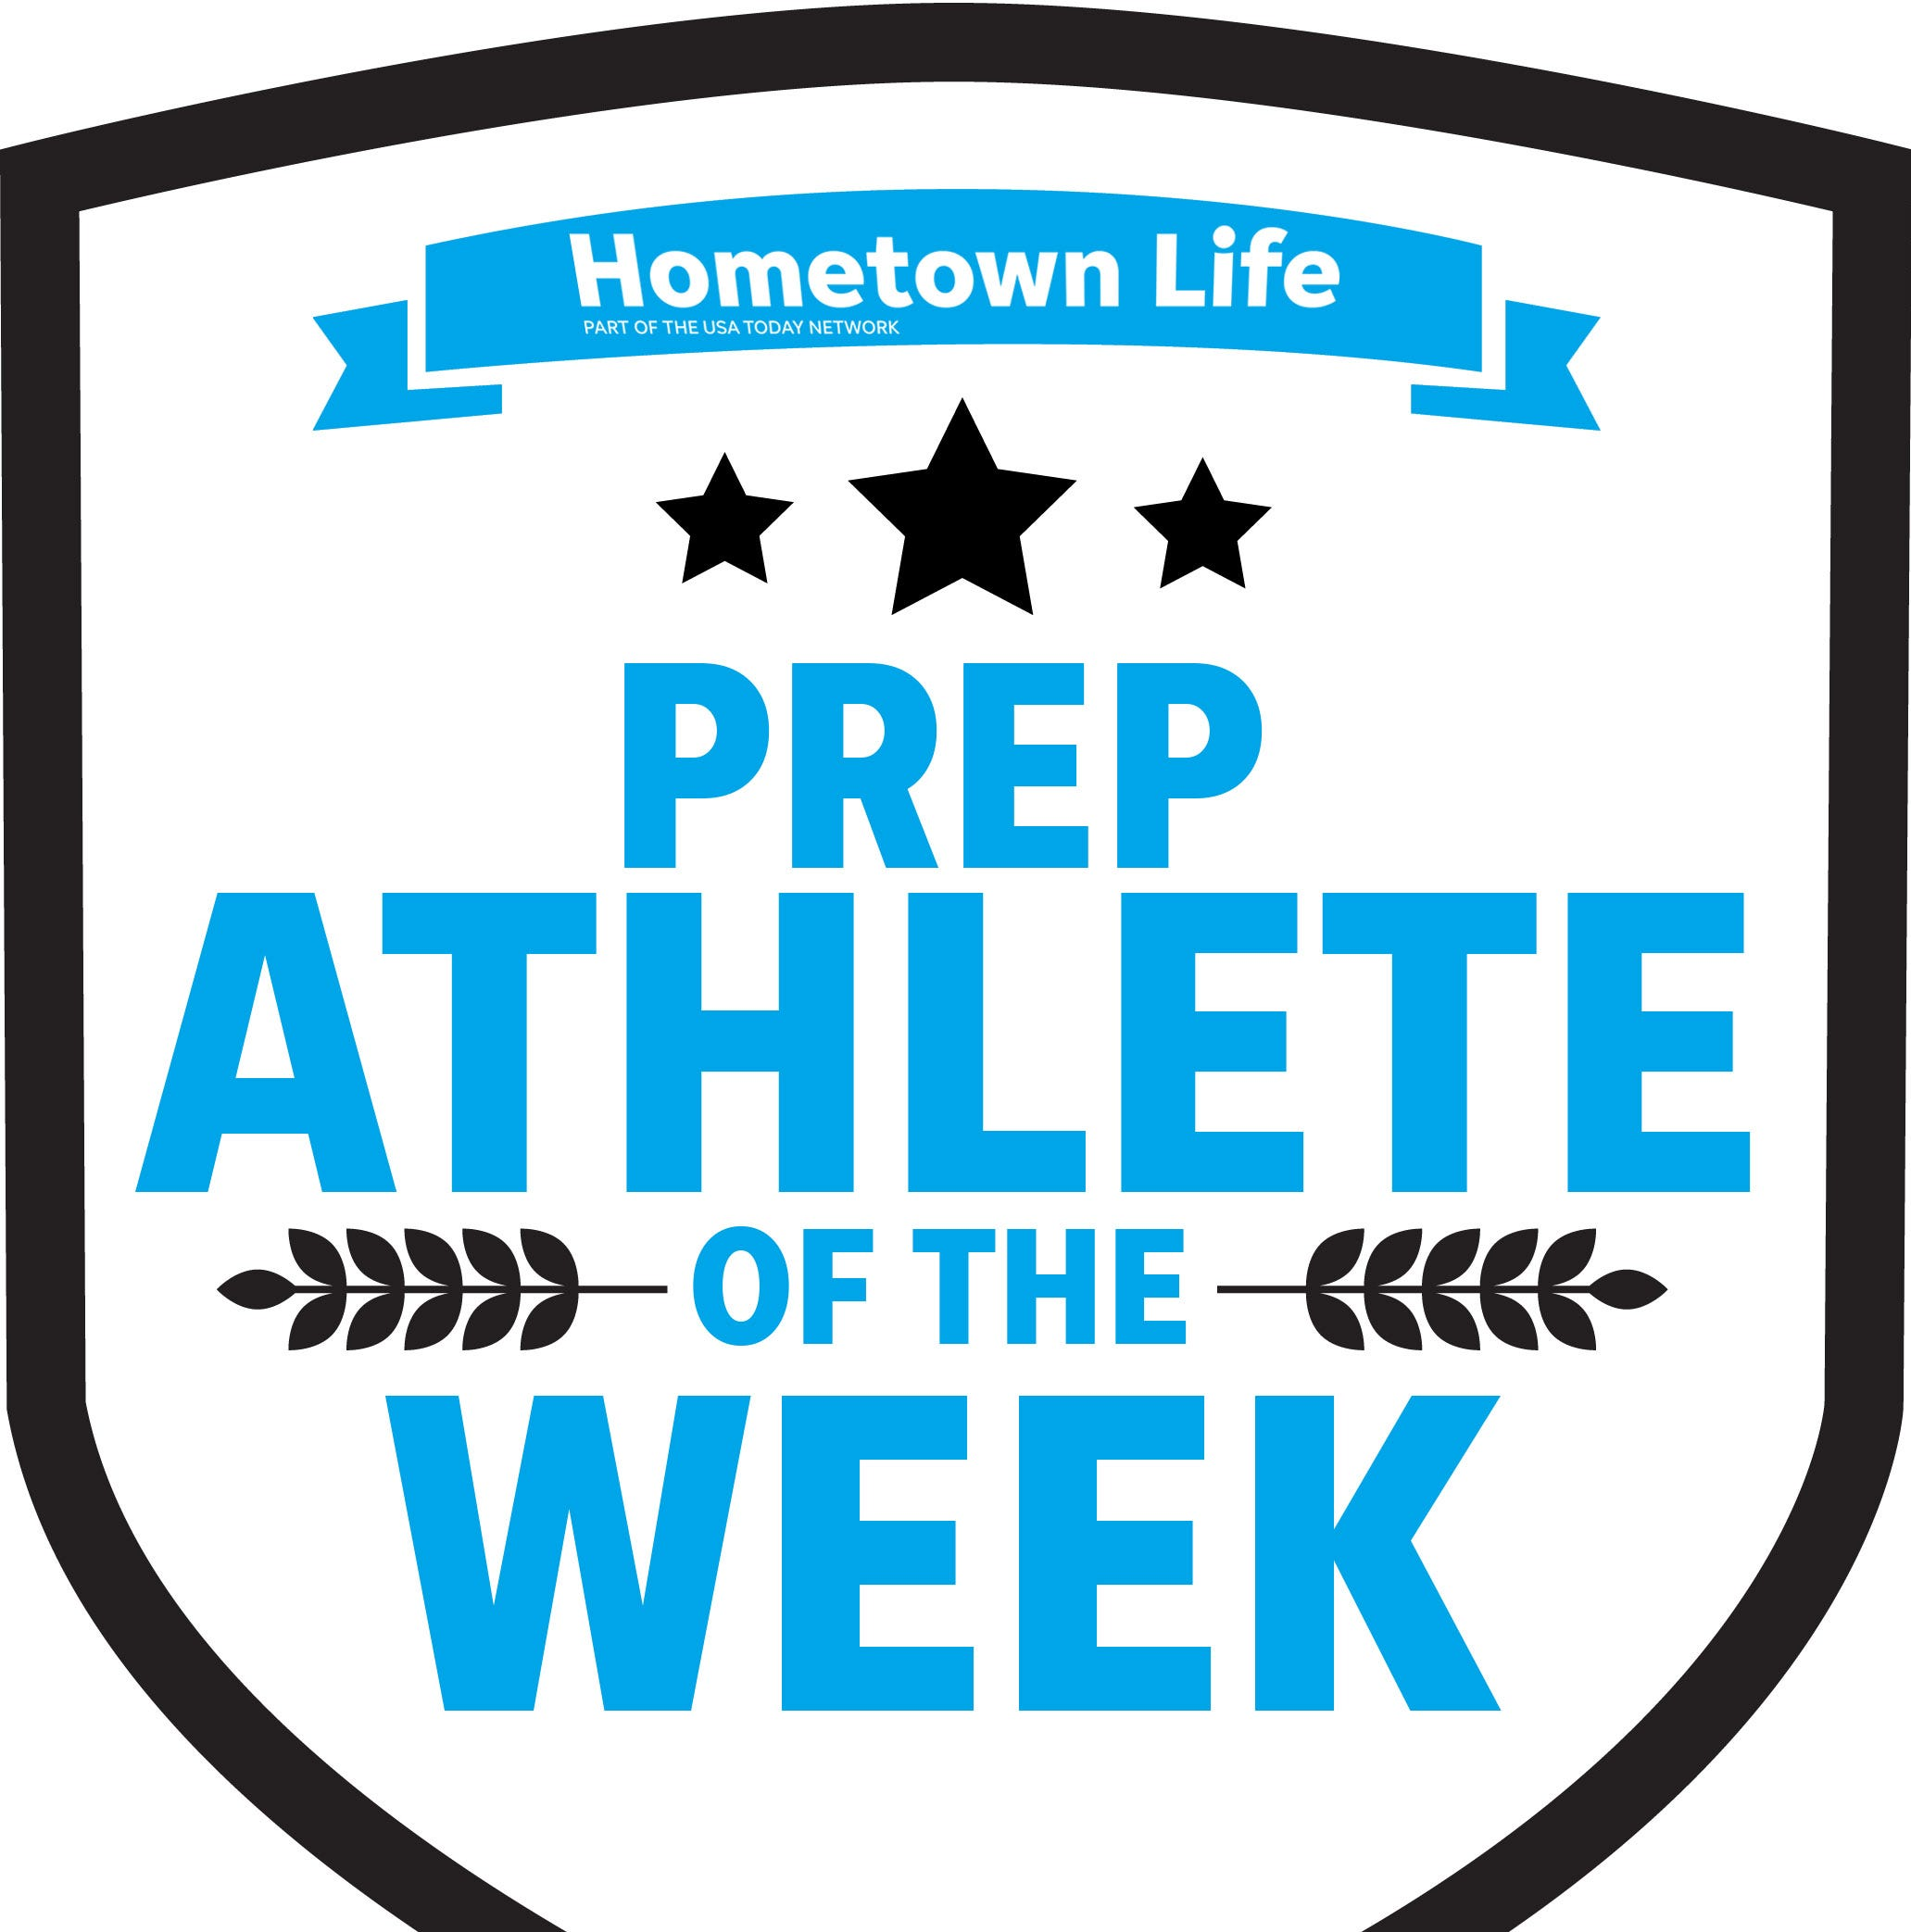 Vote for Hometown Life Prep Athlete of the Week